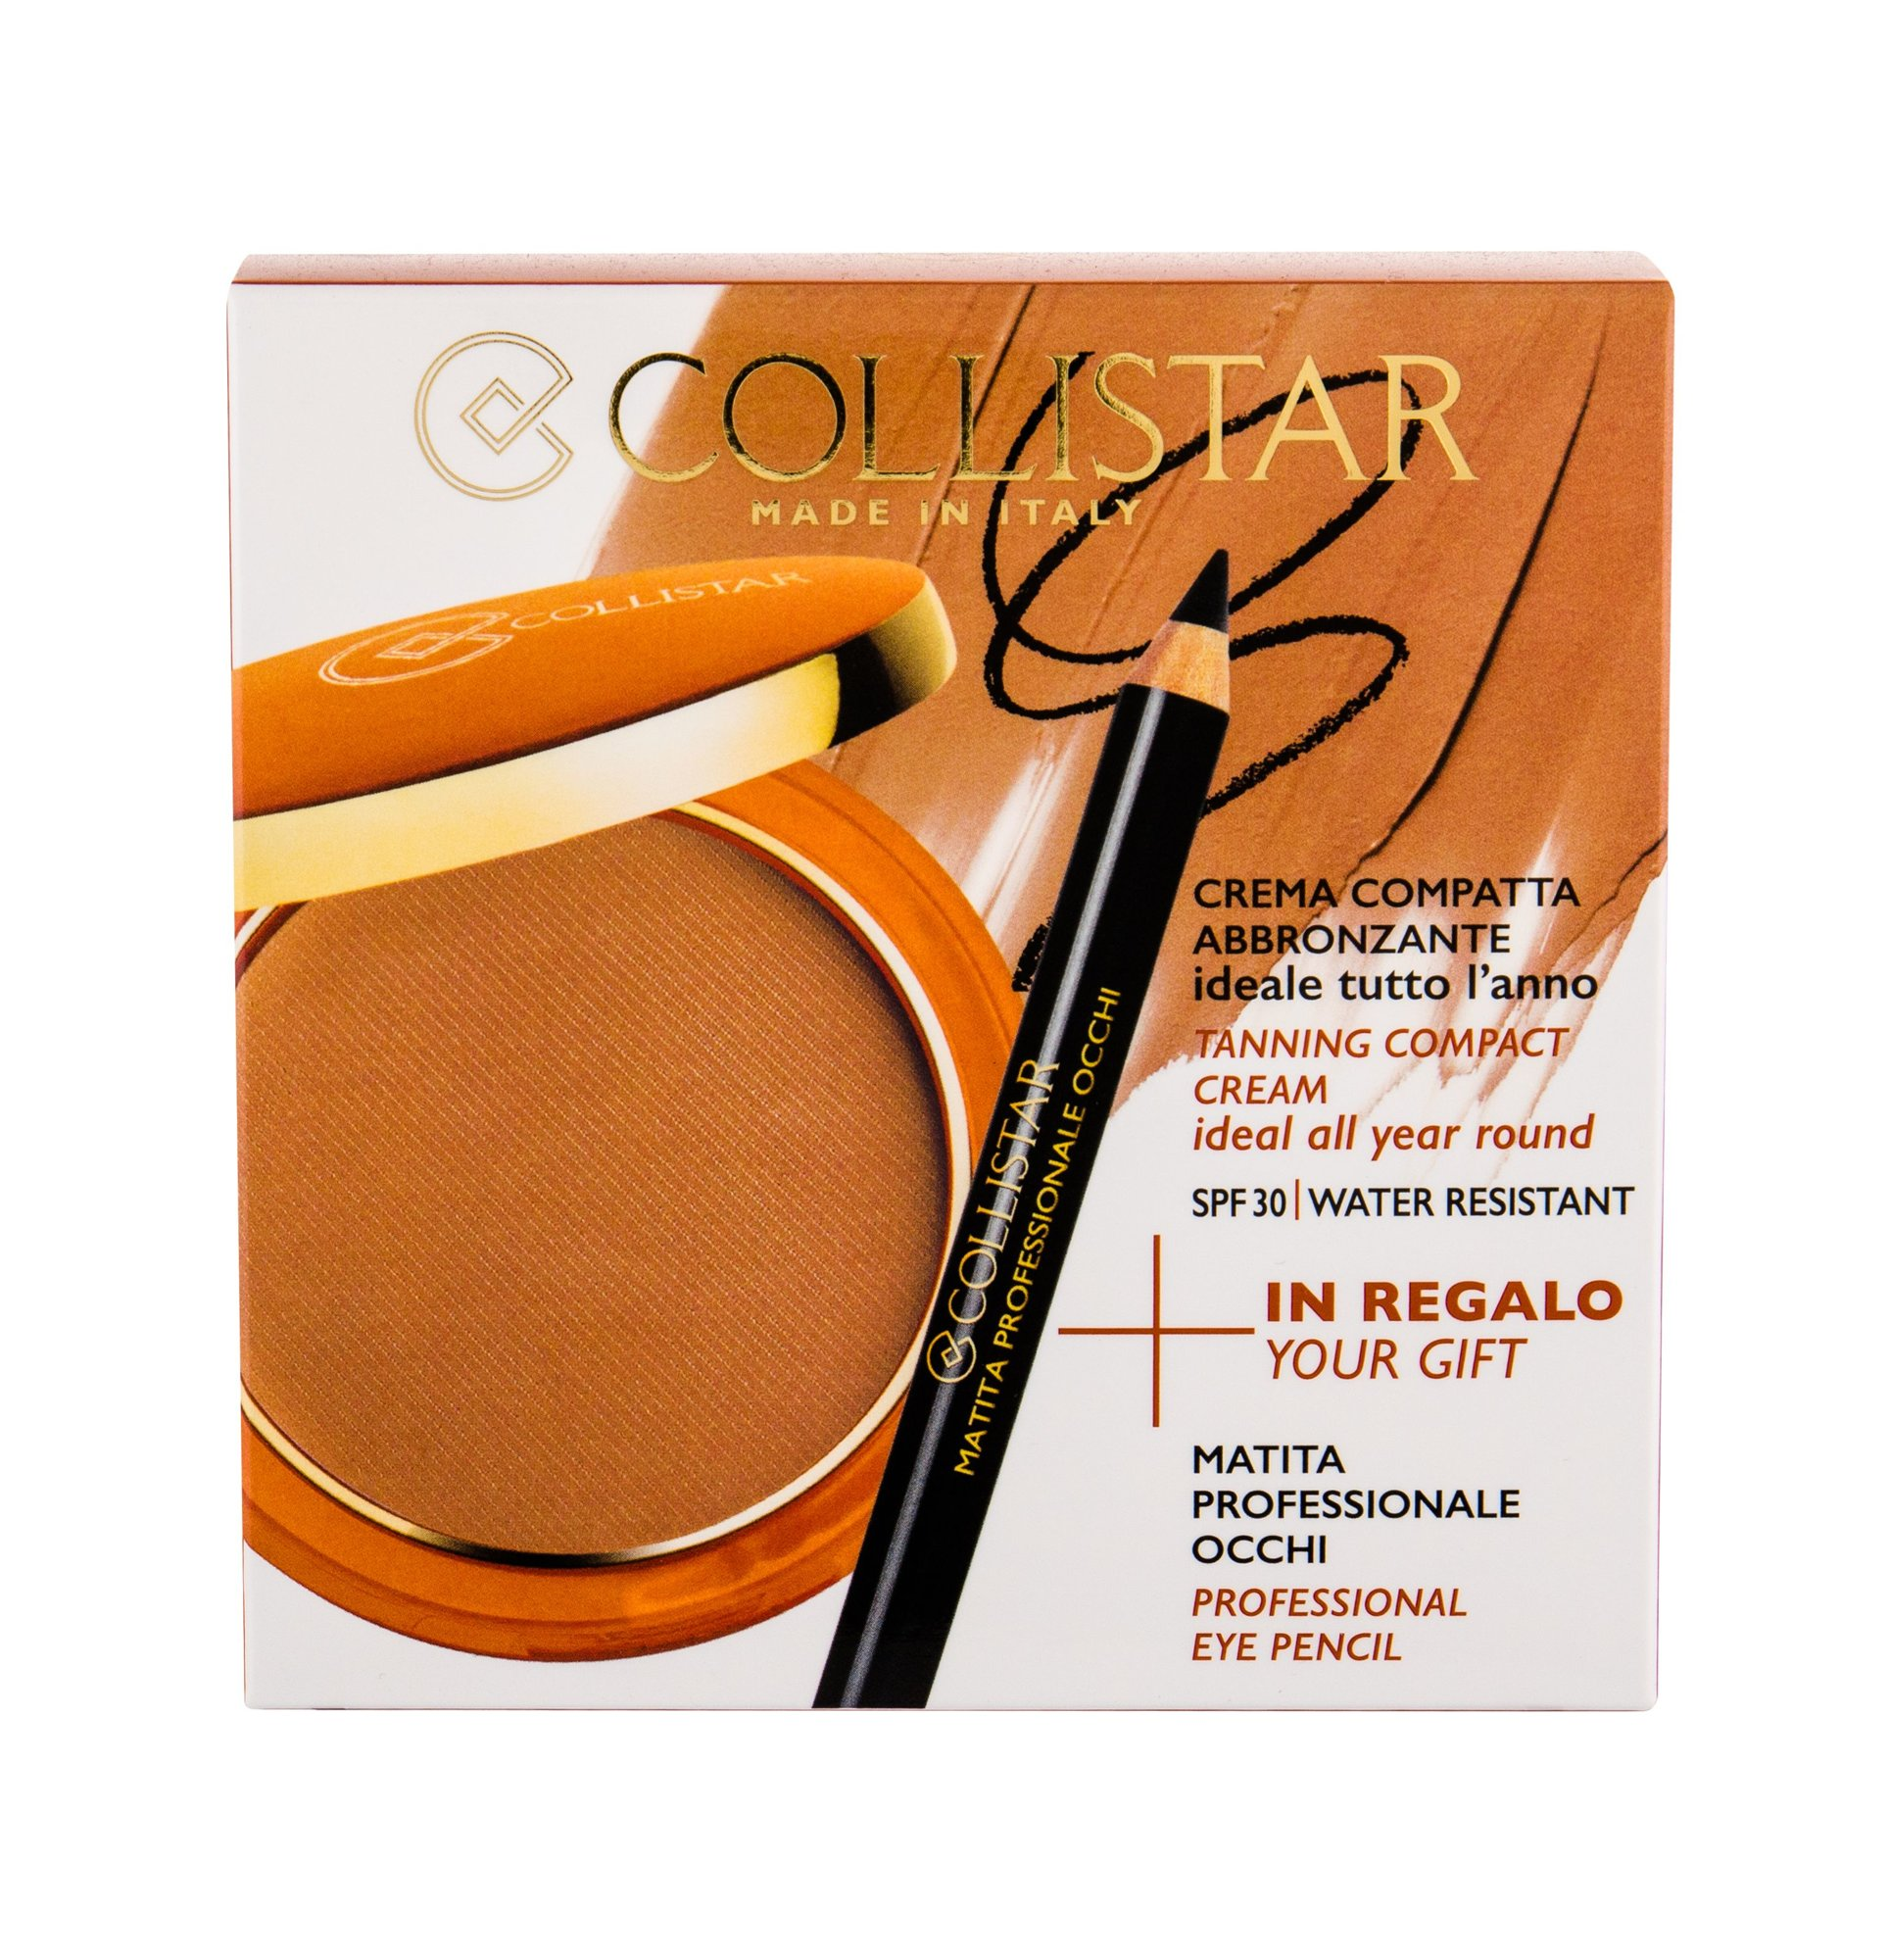 Collistar Tanning Compact Cream Powder 9ml 5 Seychelles